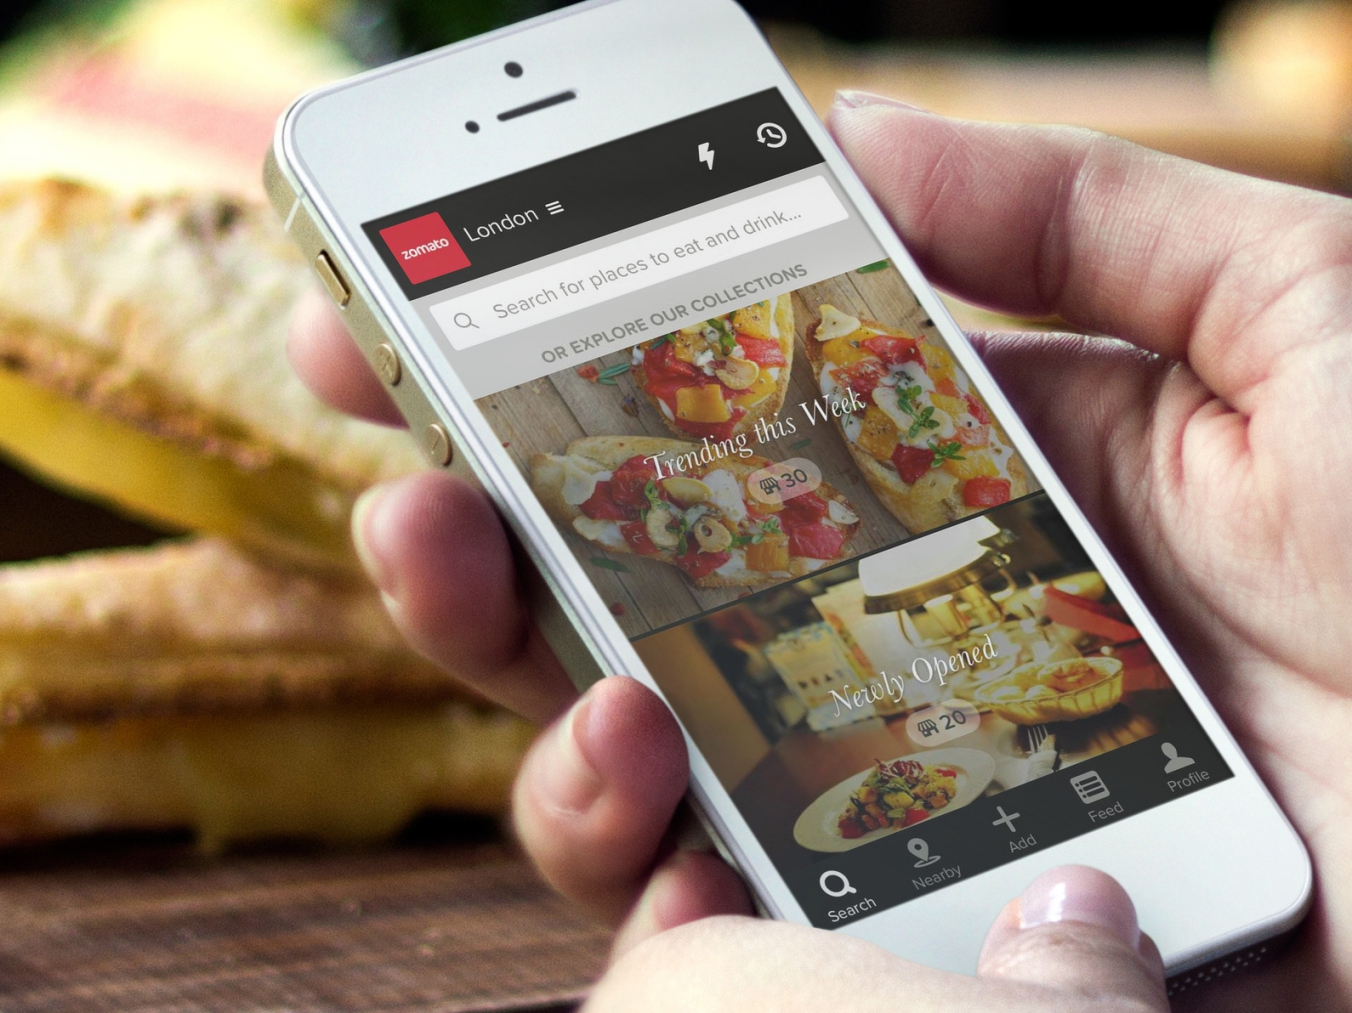 India's Zomato completes long-rumored acquisition of logistics startup Runnr